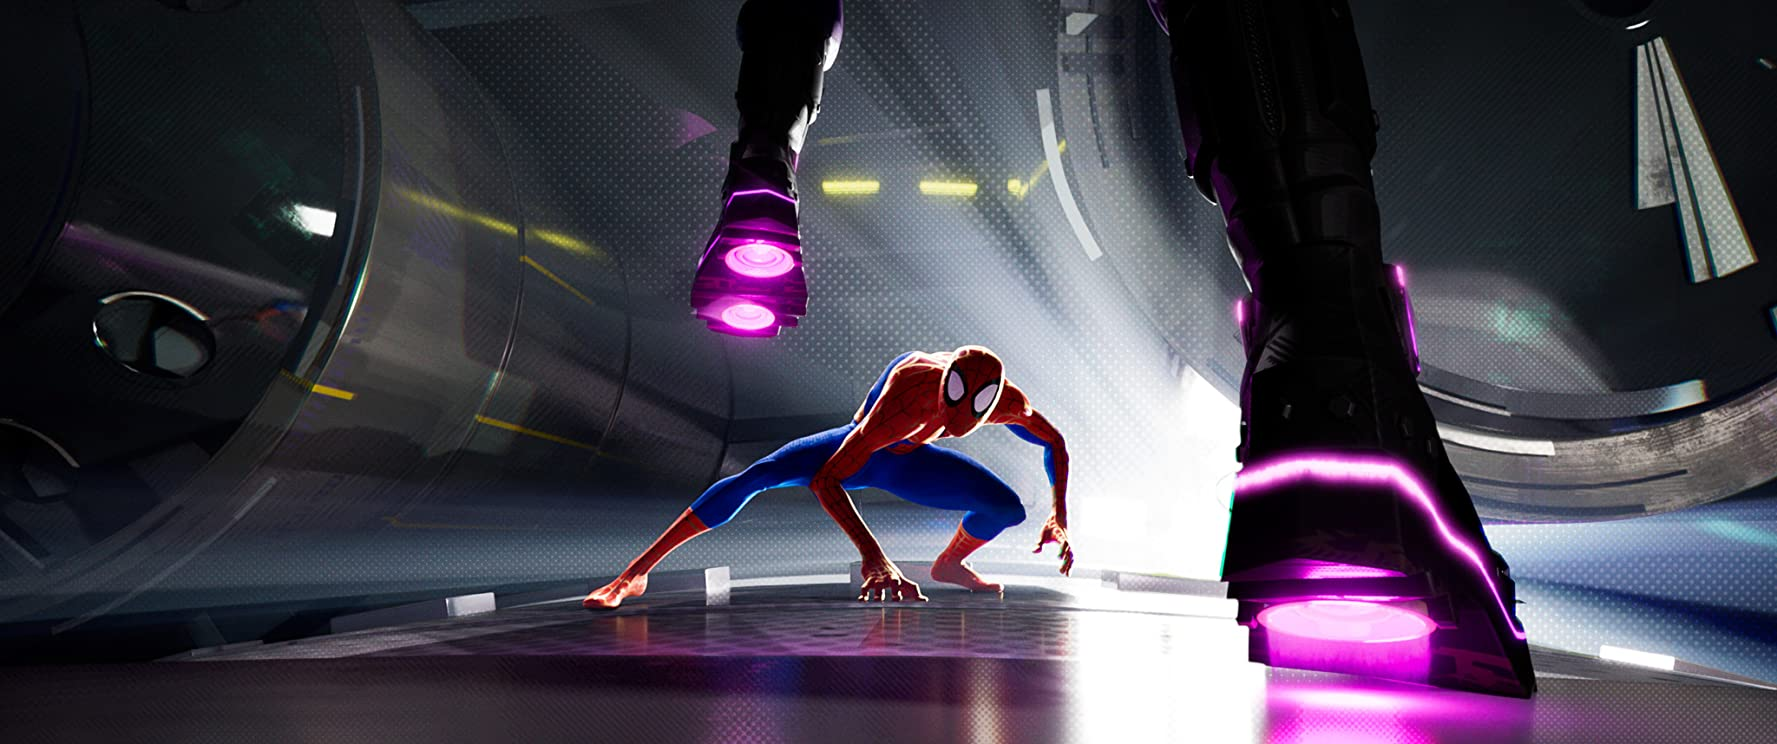 Chris Pine in Spider-Man: Into the Spider-Verse (2018)